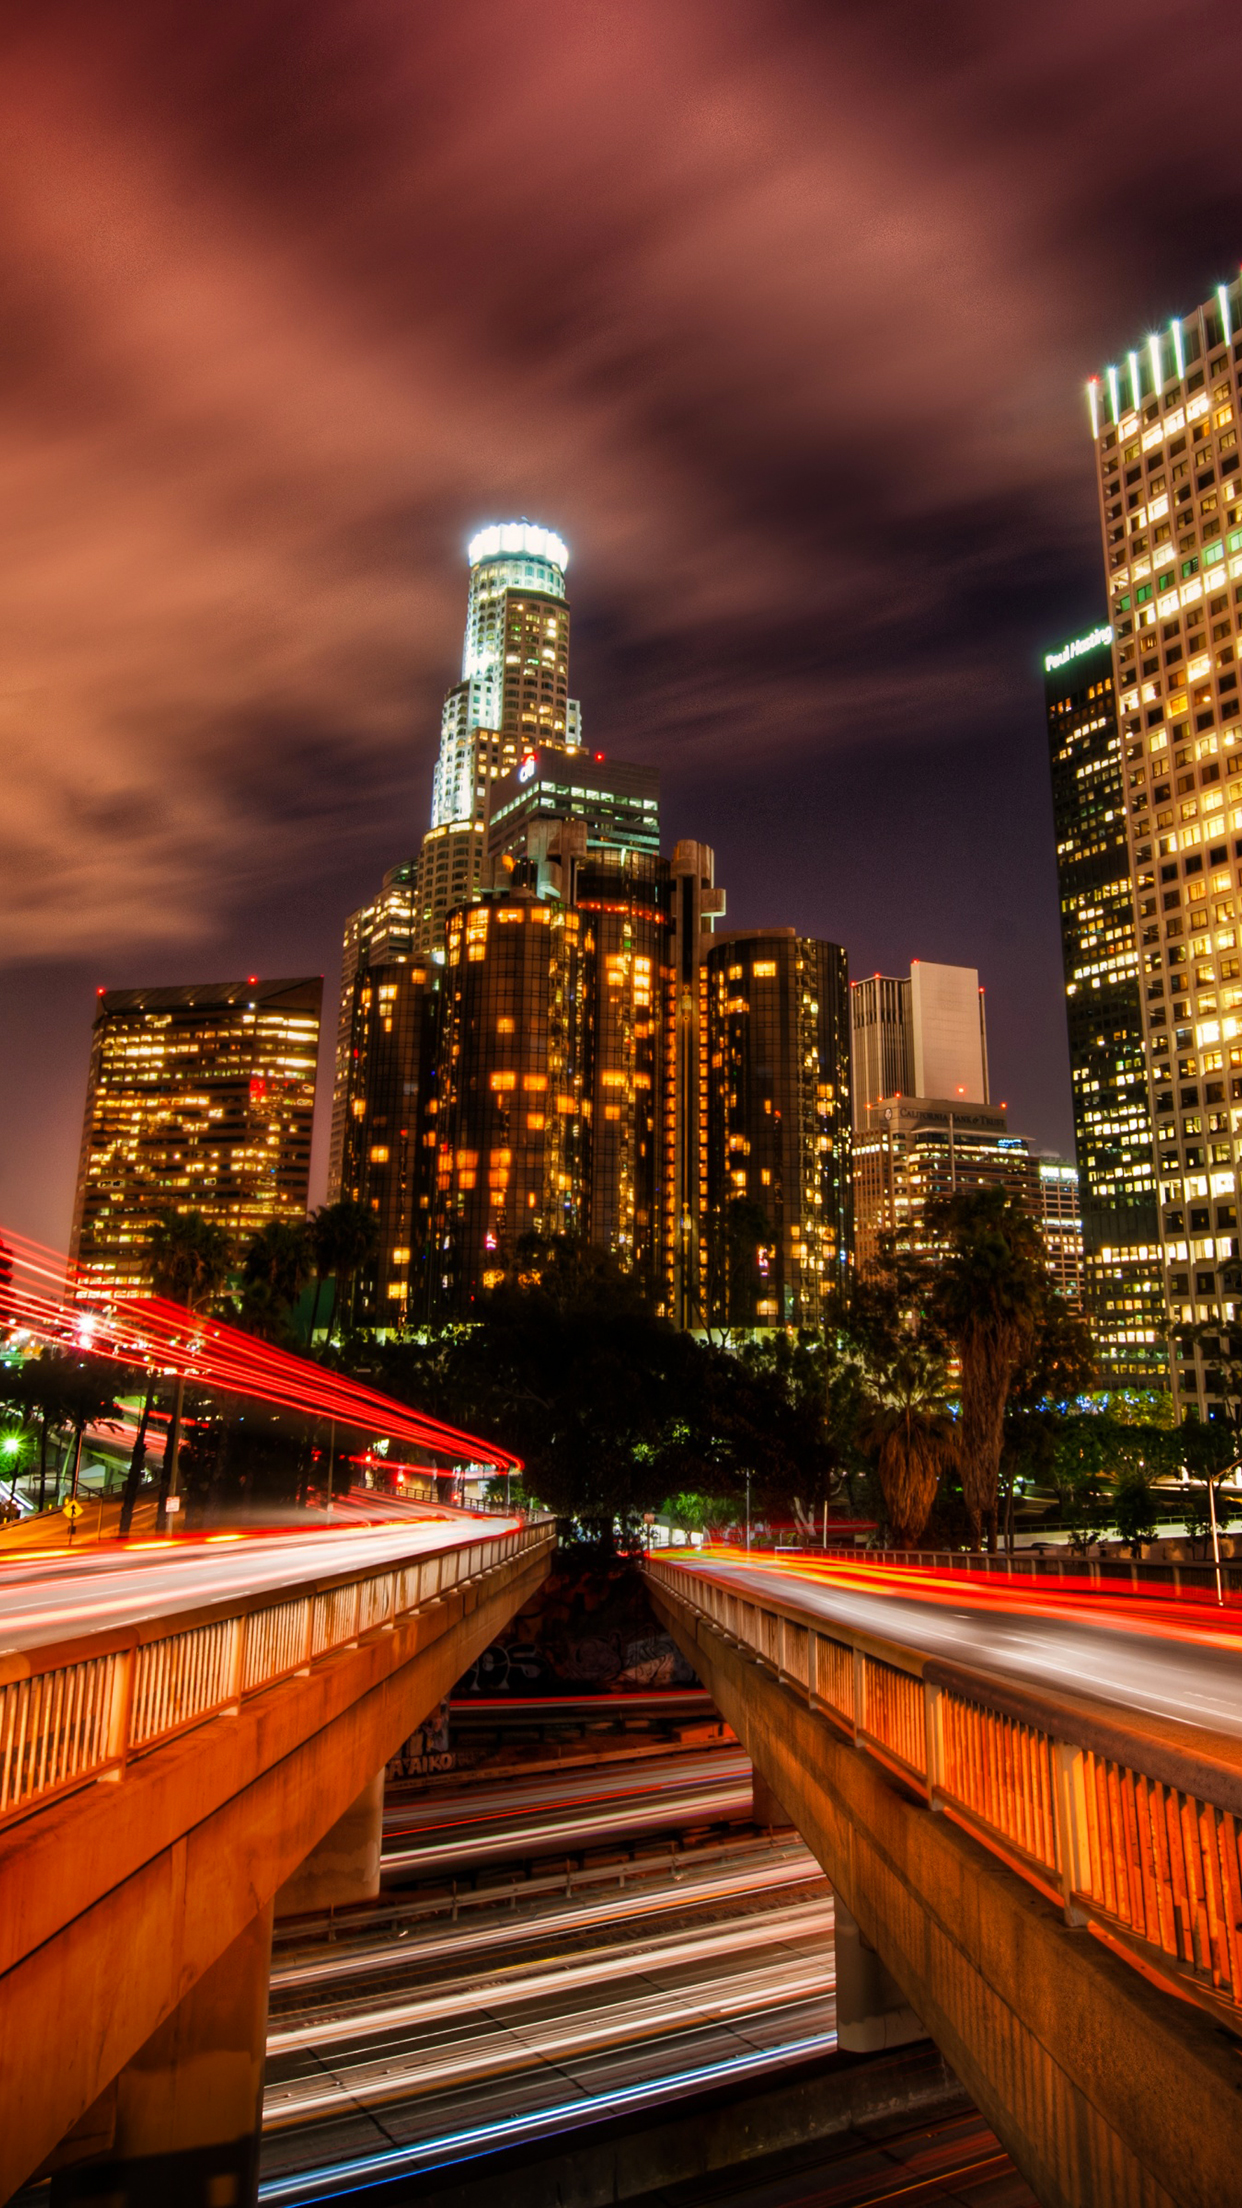 Download 3d Wallpaper Parallax Time Lapse Los Angeles Wallpaper For Iphone X 8 7 6